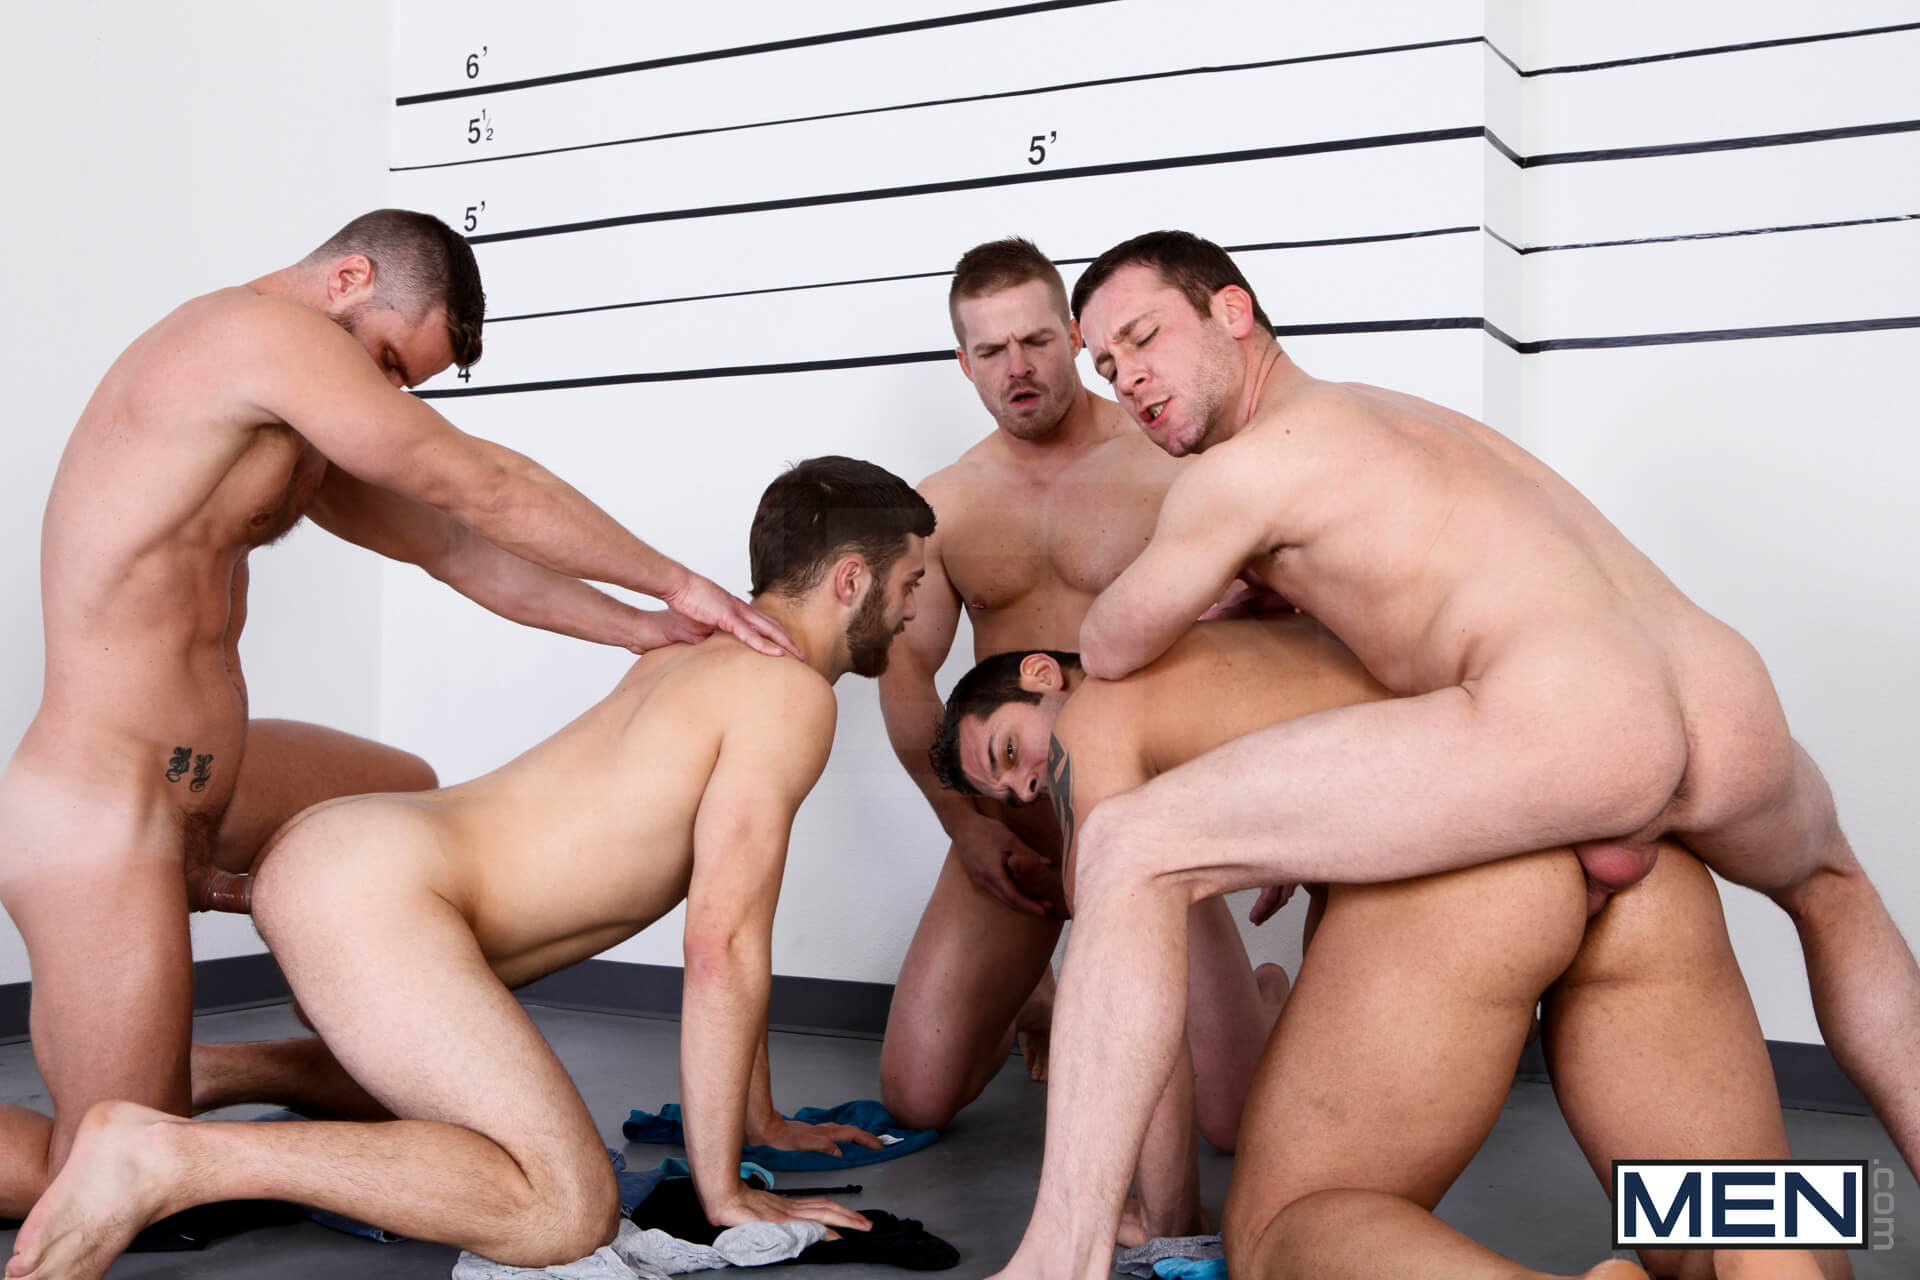 men jizz orgy the line up landon conrad liam magnuson marcus ruhl tommy defendi trevor knight gay porn blog image 12